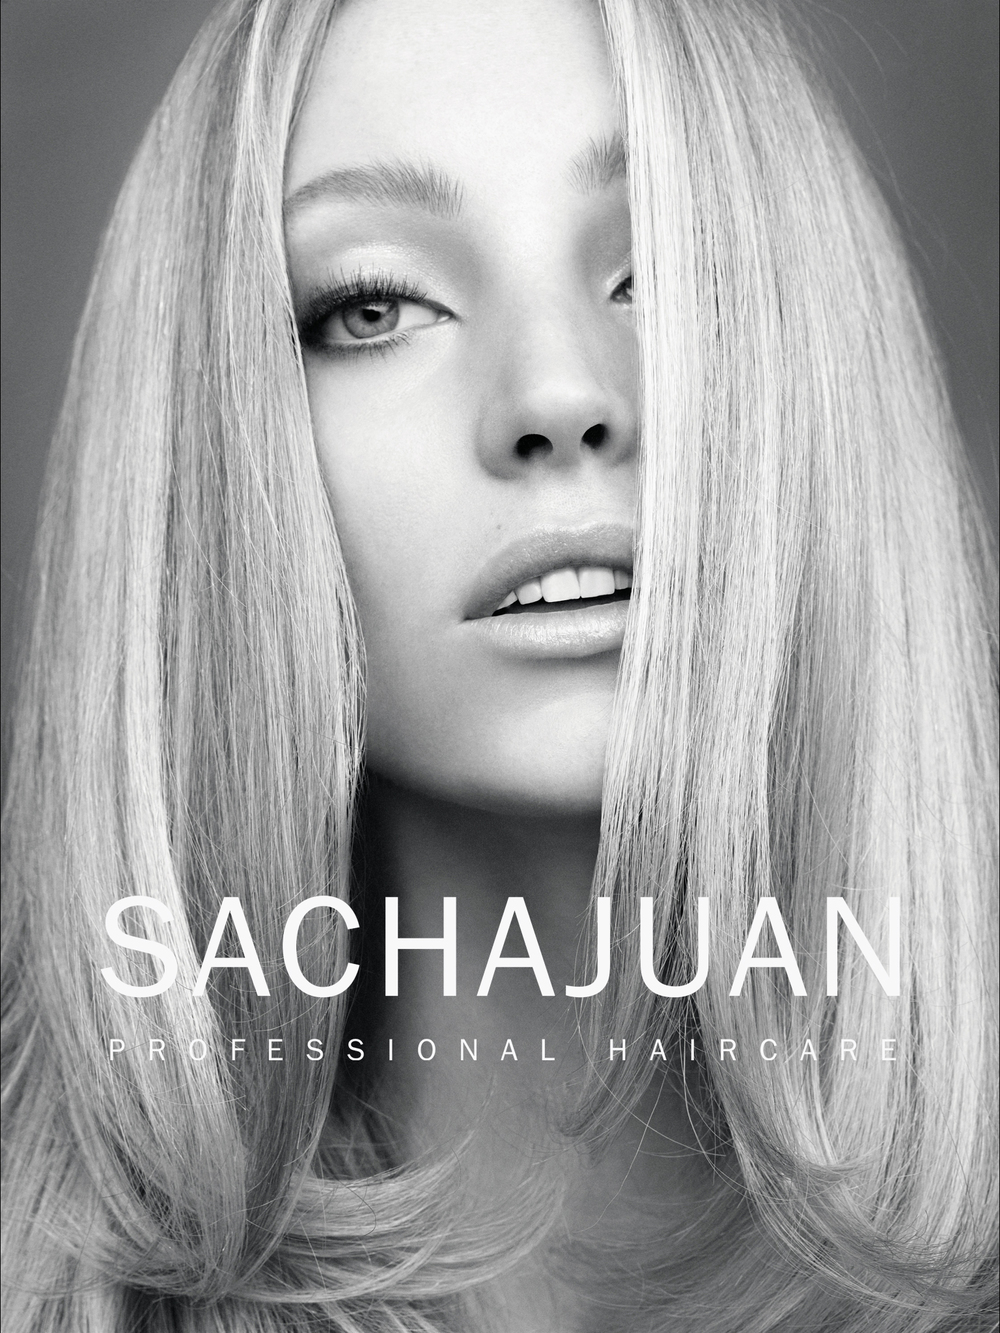 SachaJuan hair campaign shot in Stockholm by Patrik Andersson